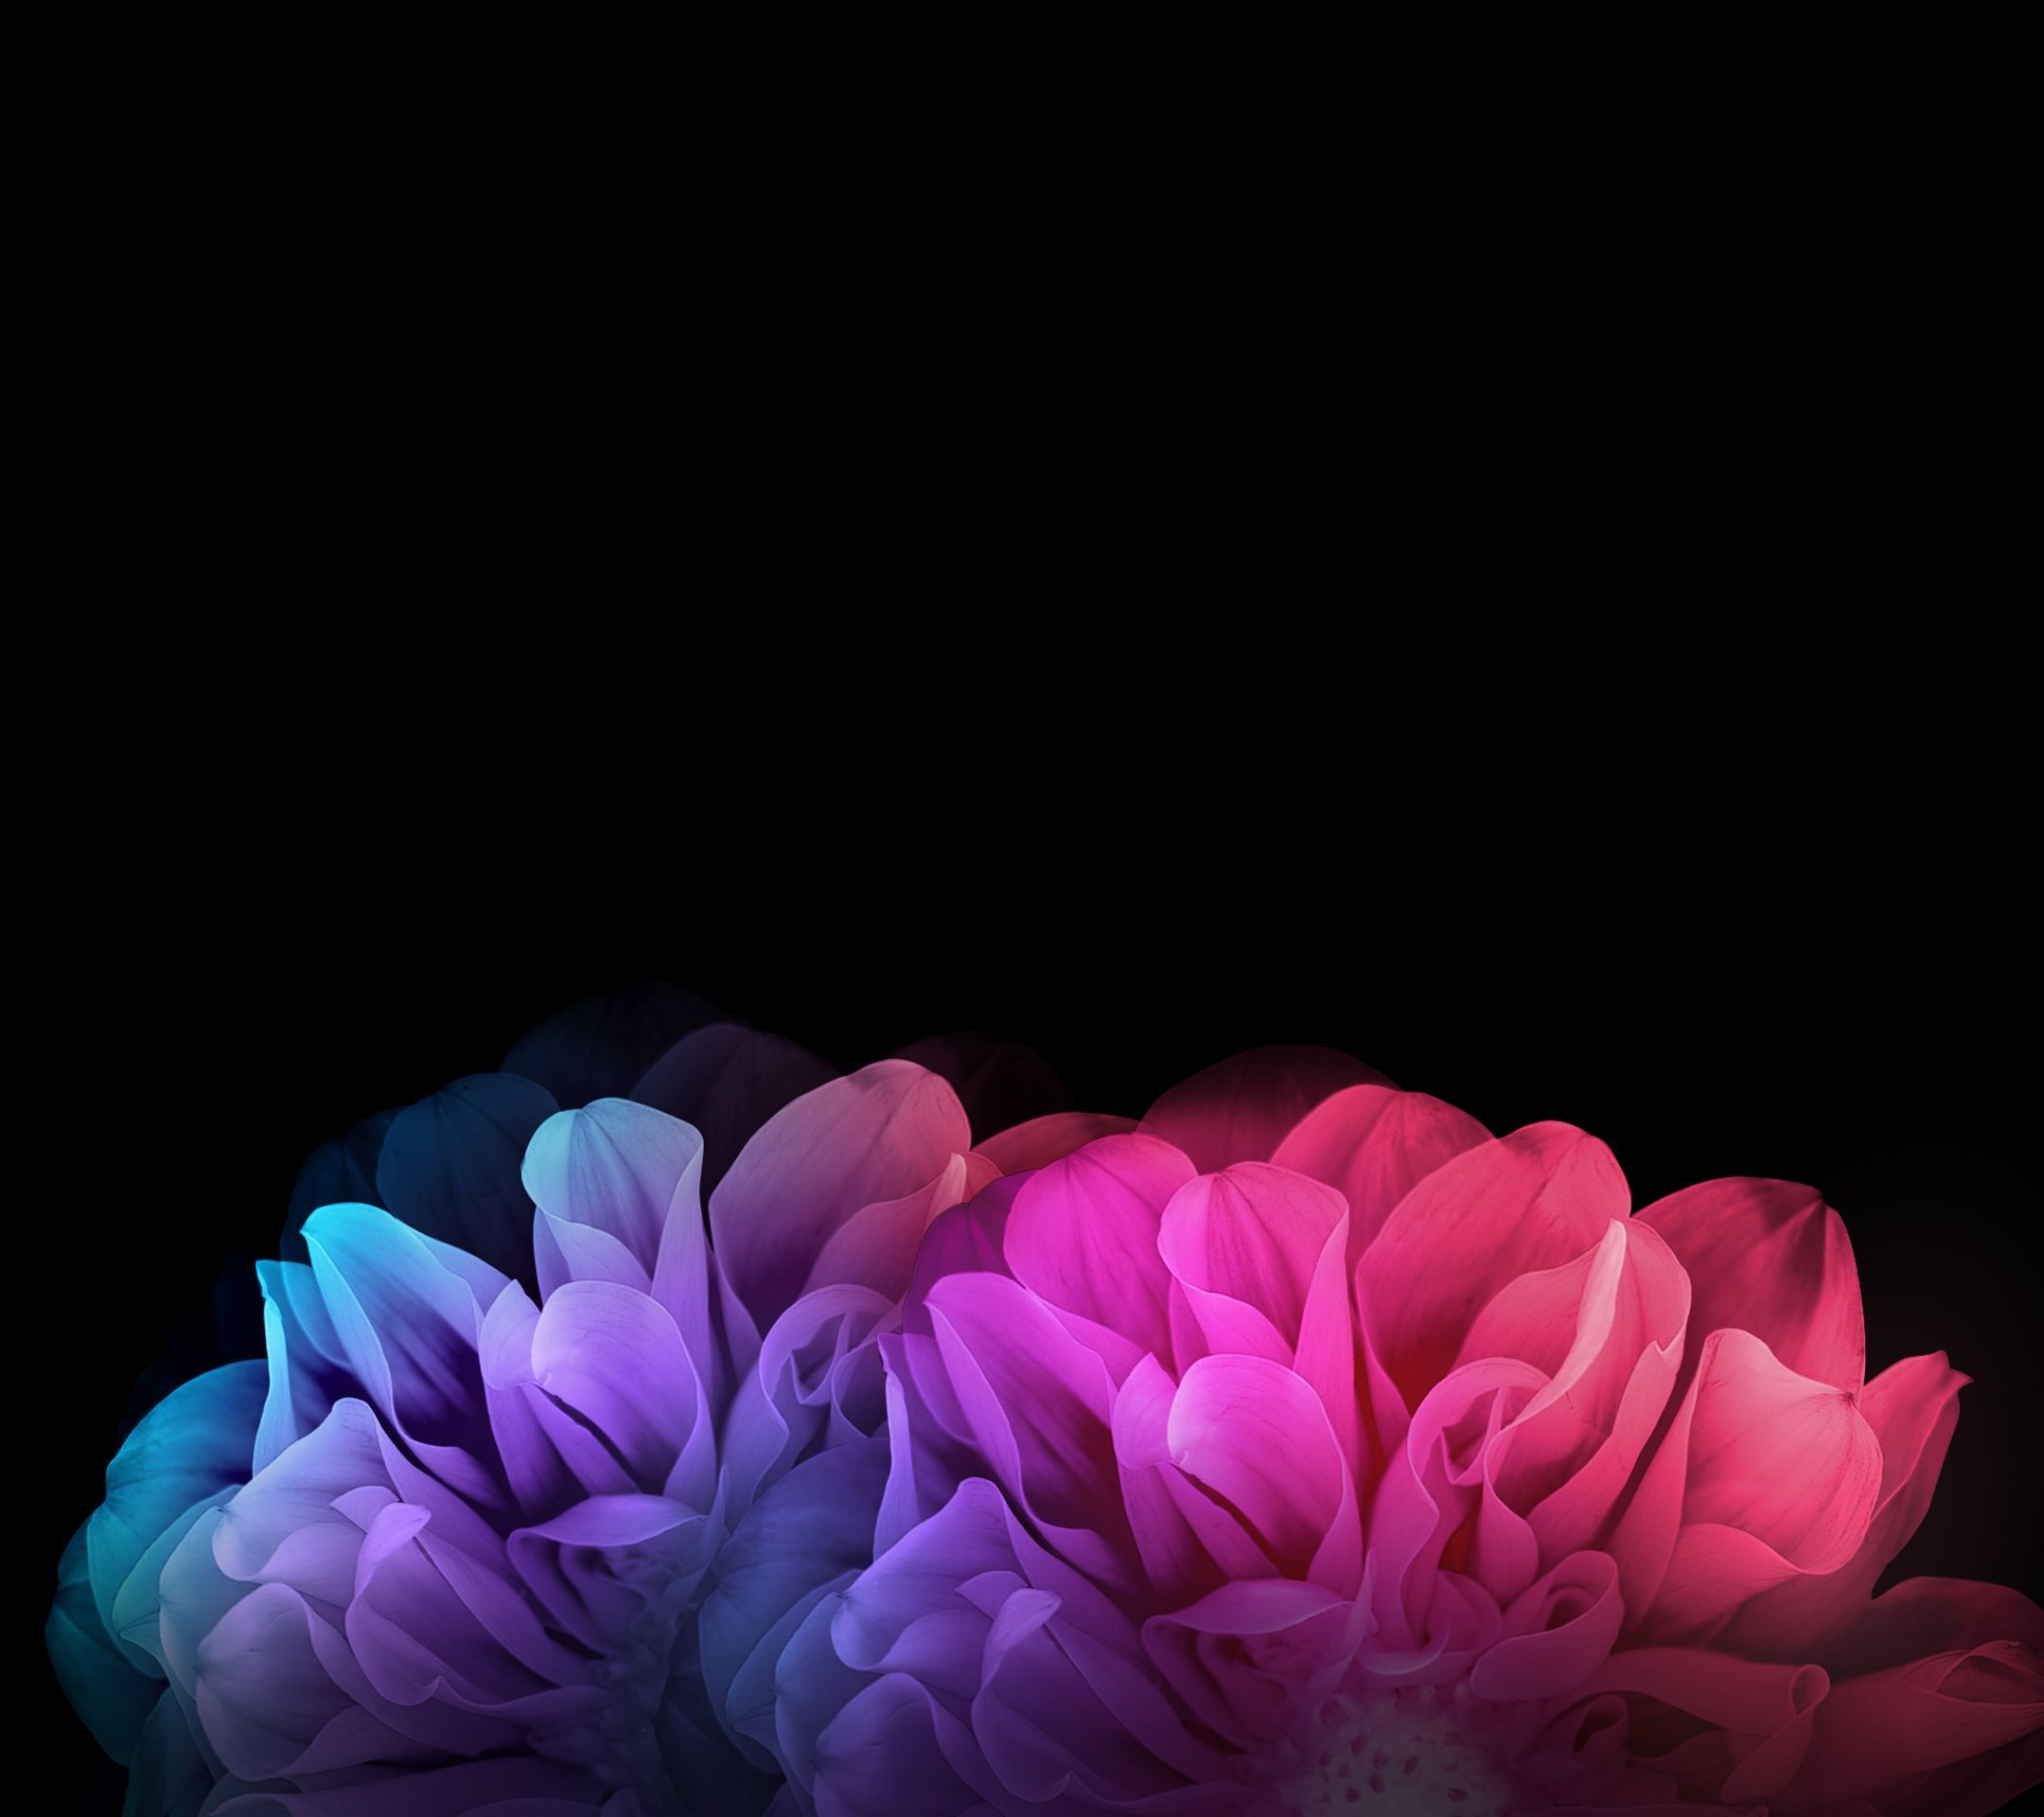 Lg Phone Wallpapers 46 Wallpapers Hd Wallpapers Cute Mobile Wallpapers Flowers Dark Background Cellphone Wallpaper